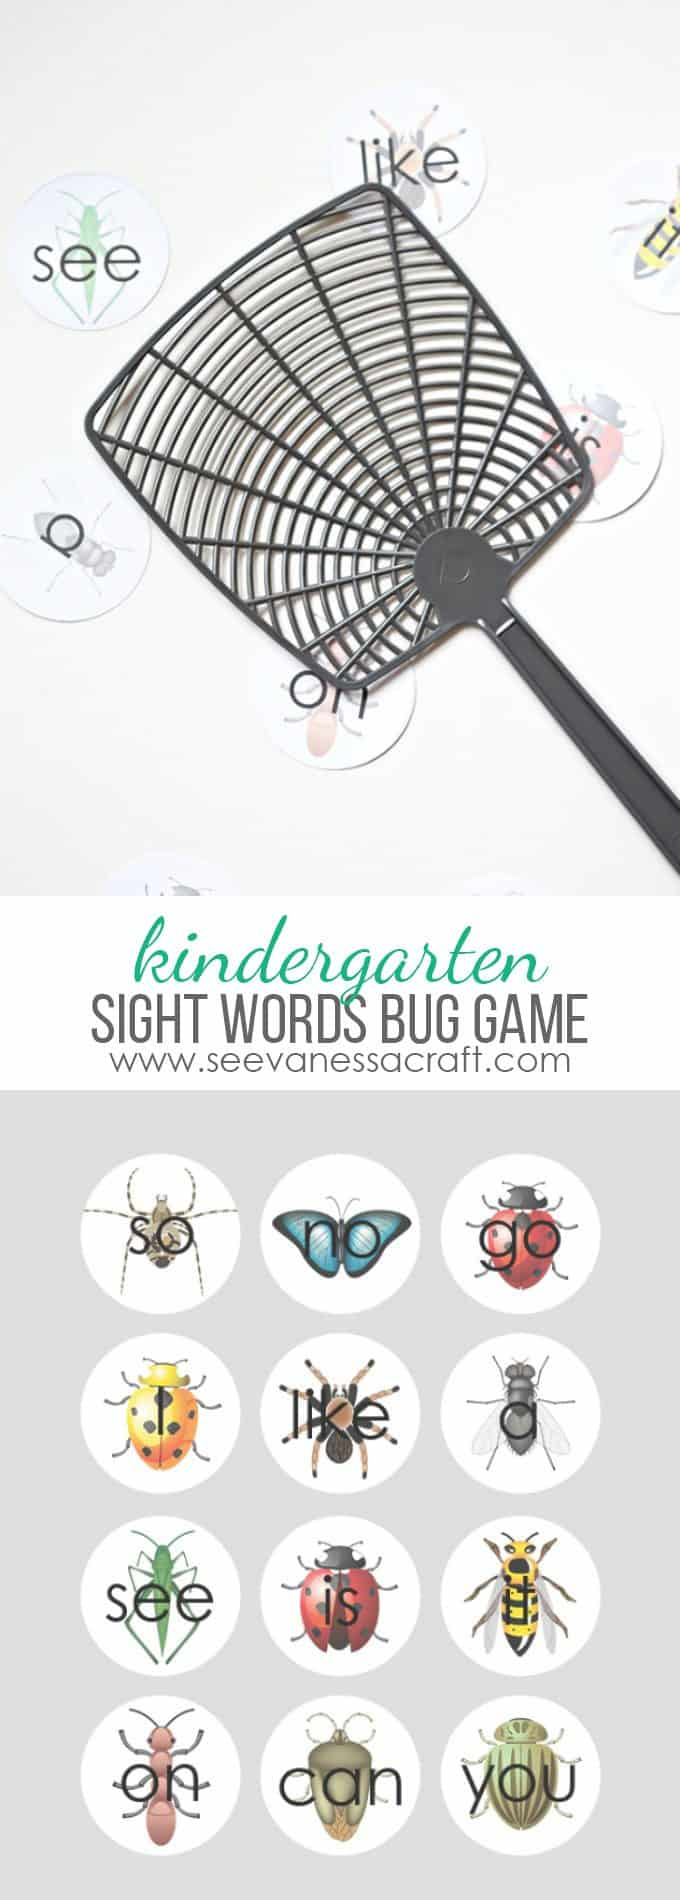 Sight-Words-Bug-Game-for-Kindergarten